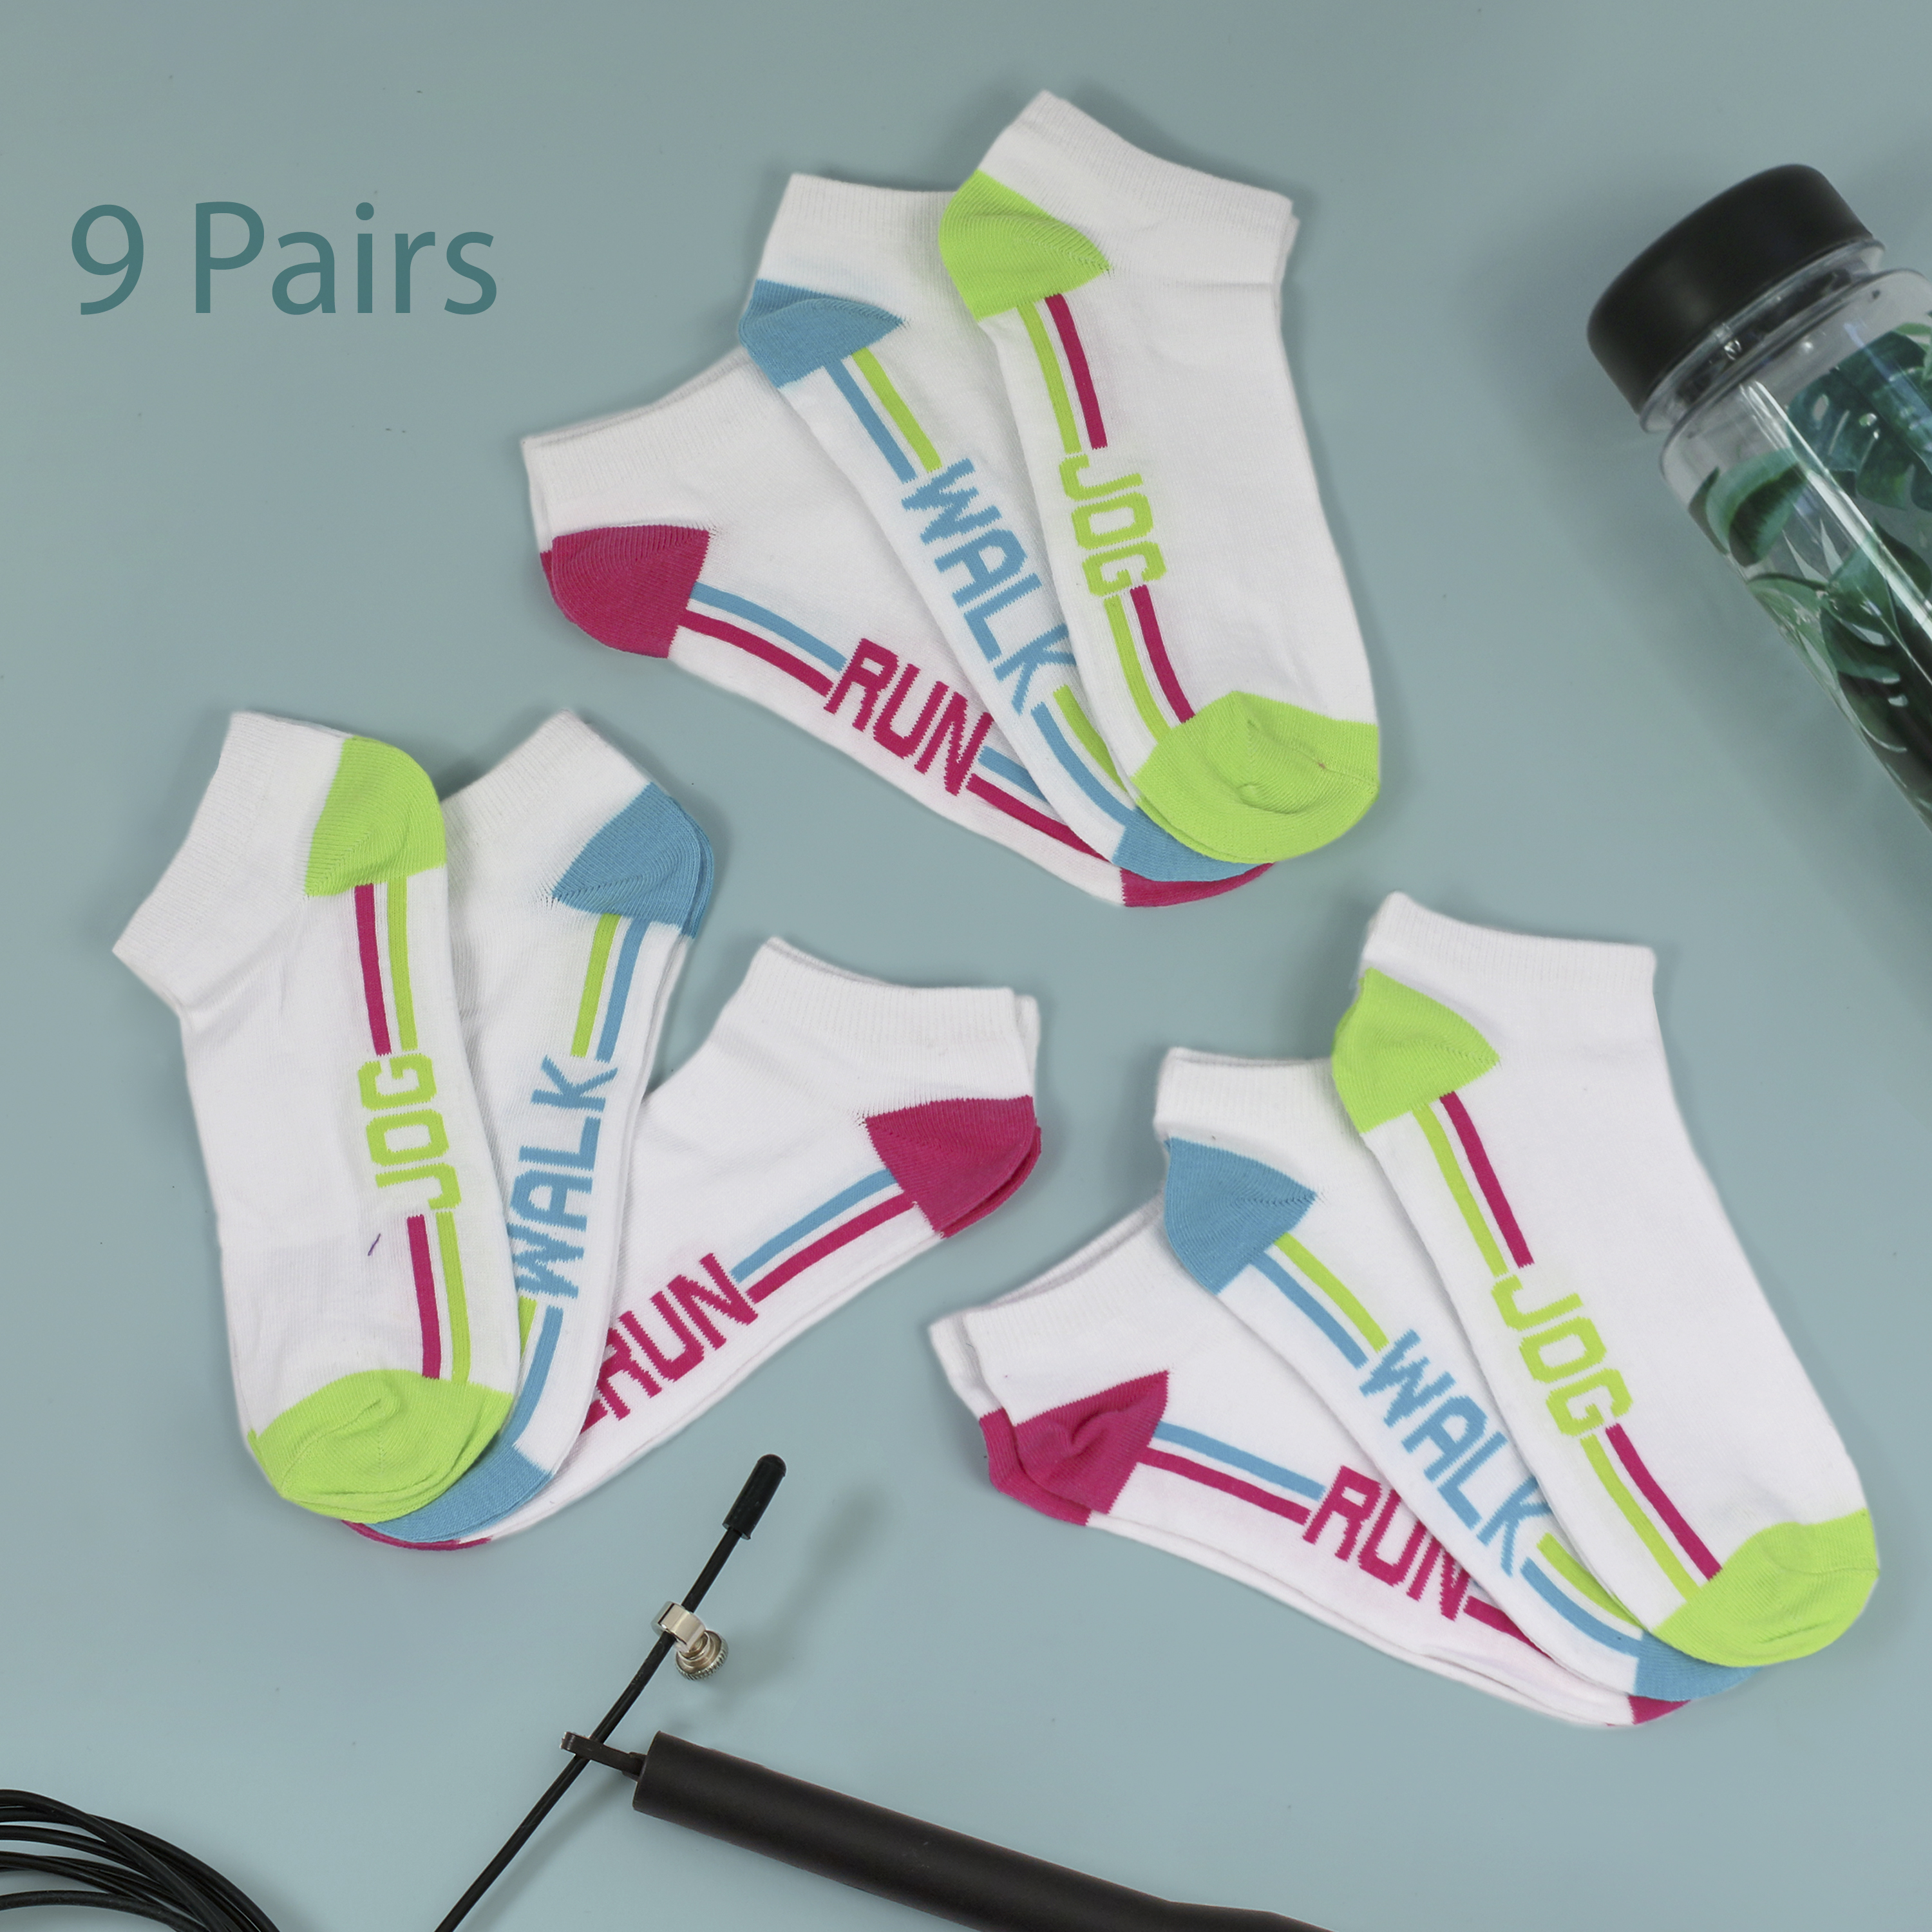 New 3 pairs of Womens Work Out Trainer Liner Gym Sports Socks Size UK 4-8